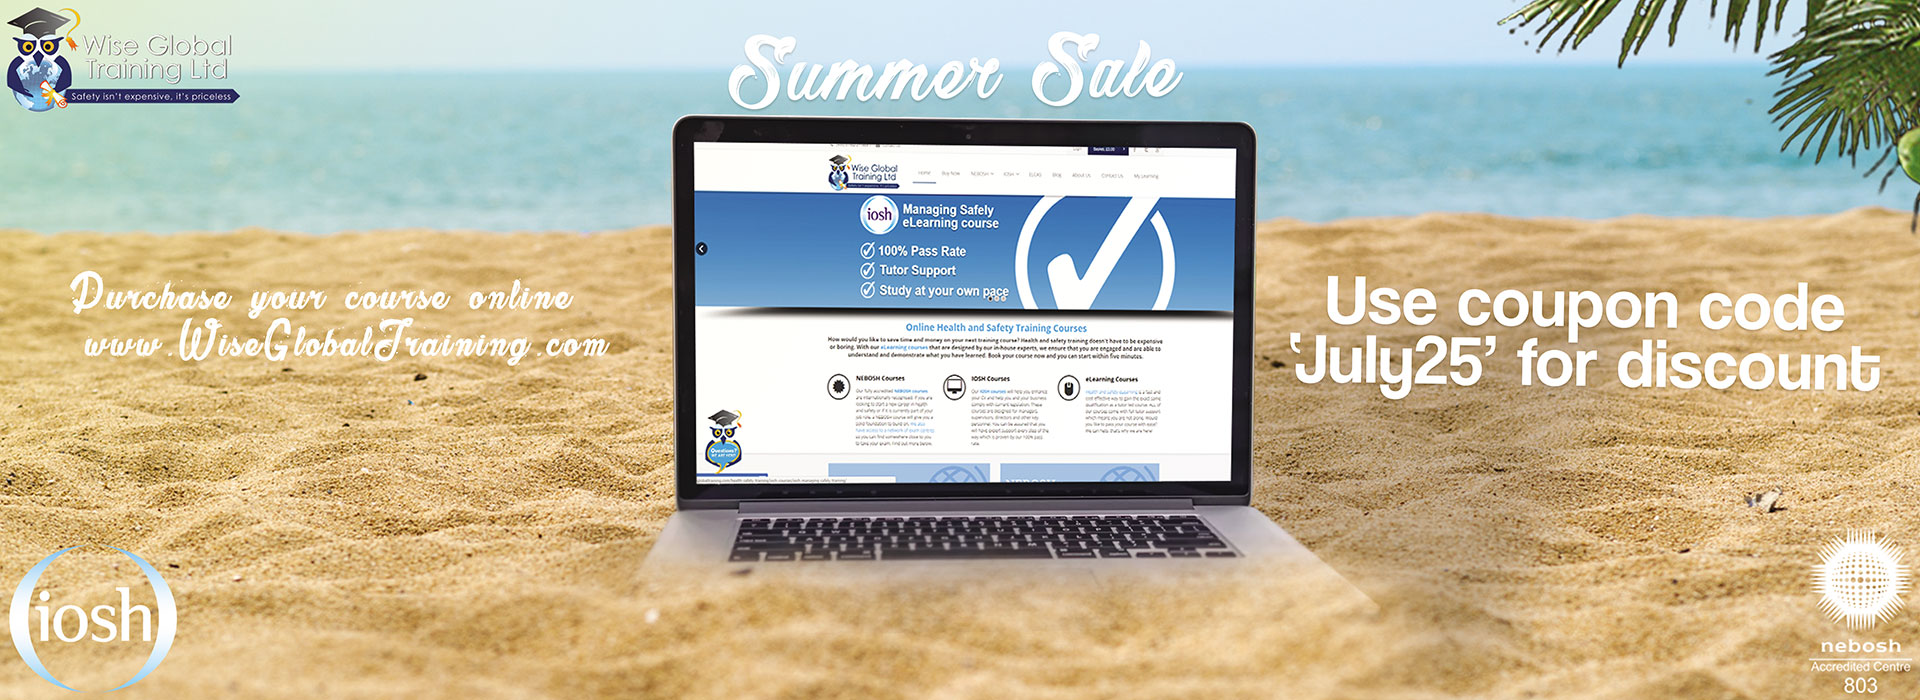 Summer-Sale-Website-Banner